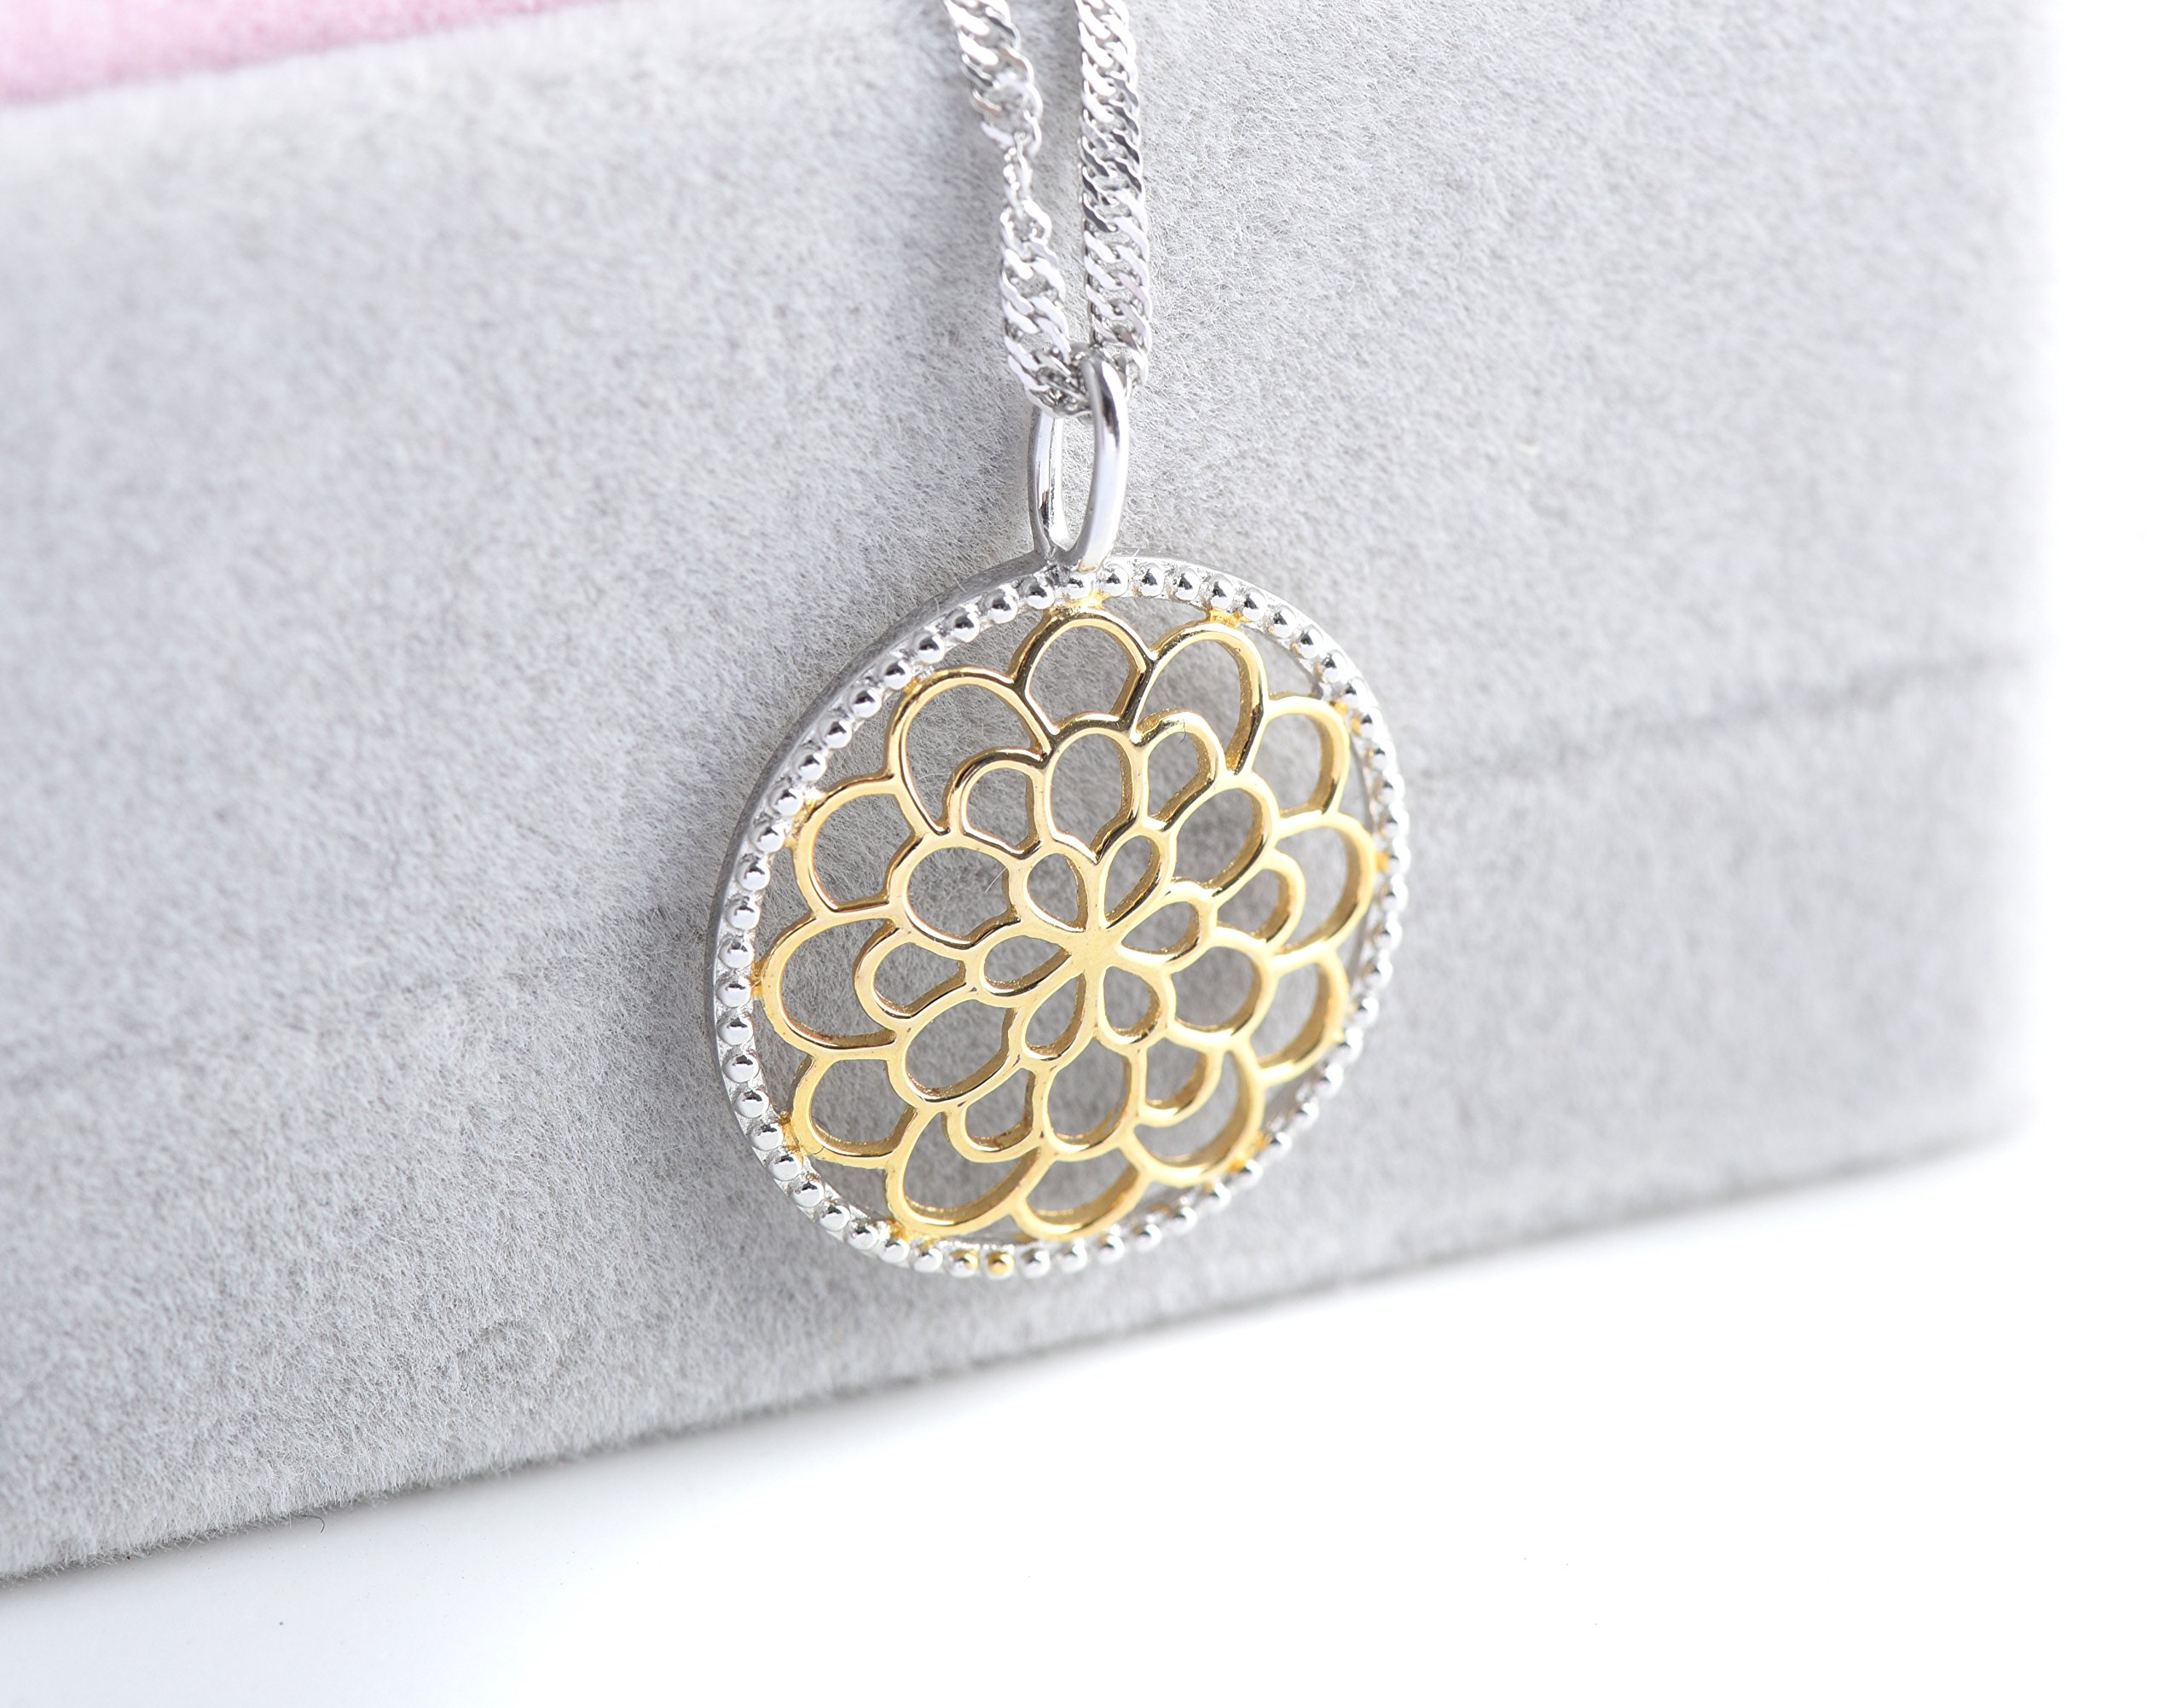 Sterling Silver and 18K Gold Bali Inspired Filigree Round Circle Floral Pendant Necklace, Best Jewelry for Women, 16/18